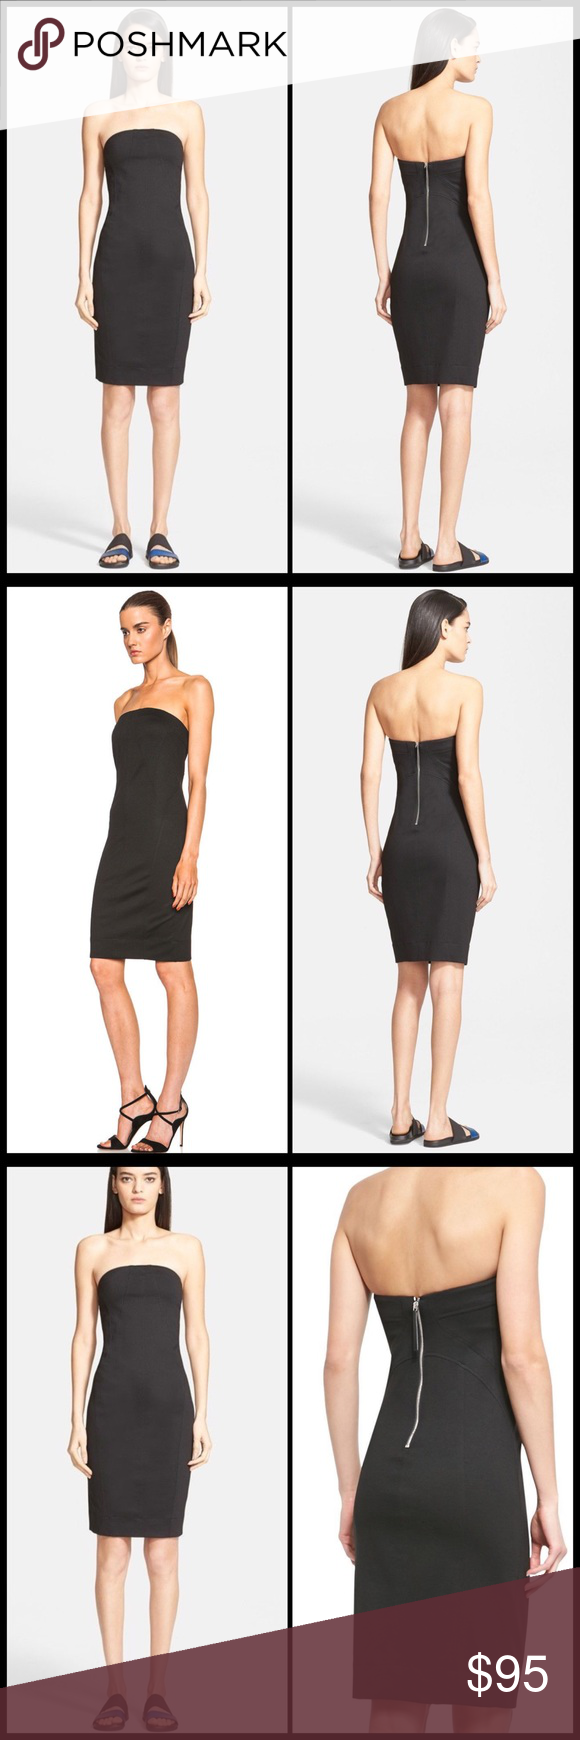 2240073a4e8 HELMUT LANG 💣 Pointe Strapless Tube Dress NWT Angled seams structure the  bodice in this essential